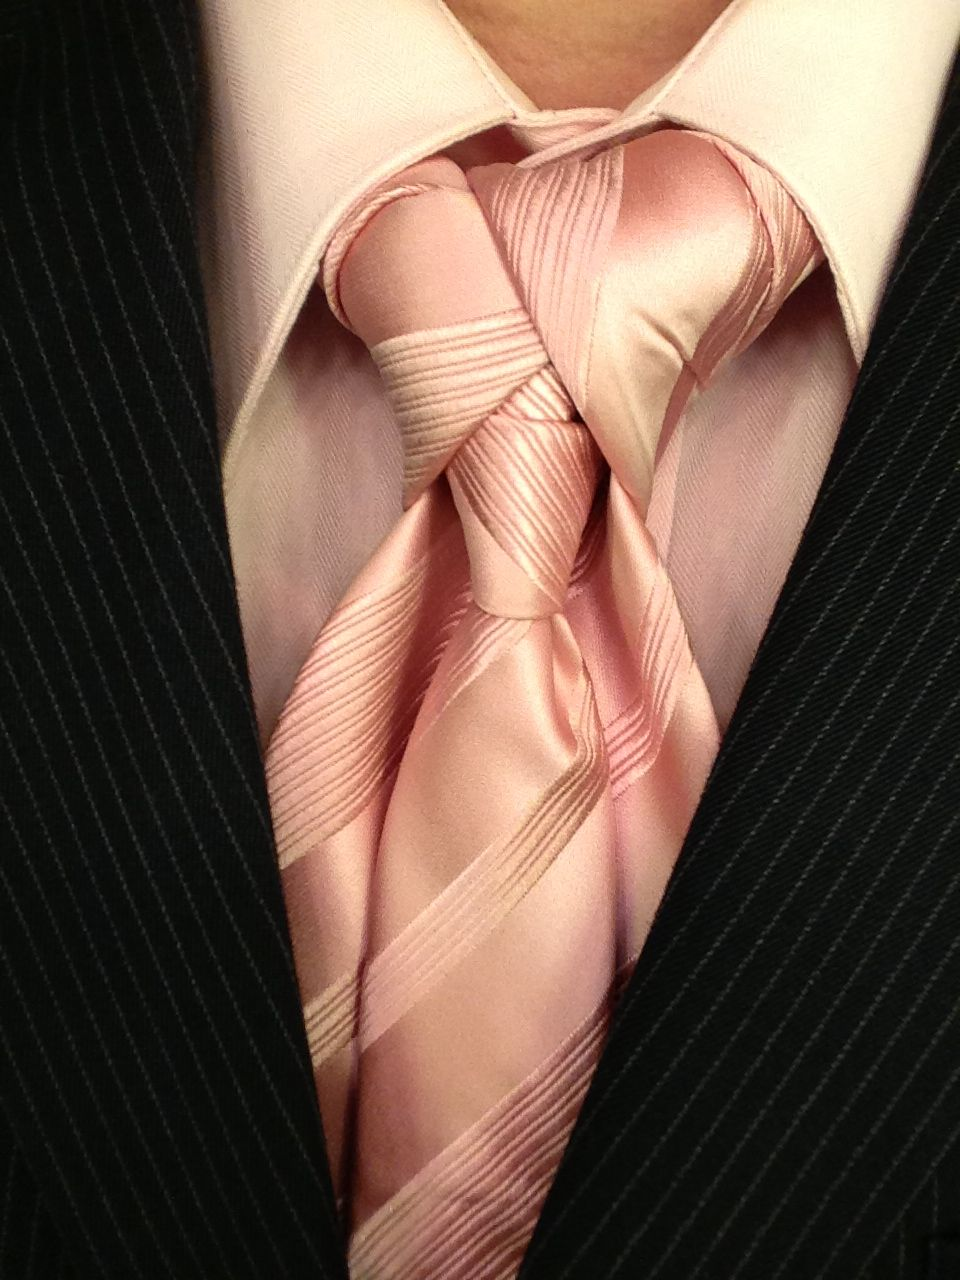 Ediety knot aka merovingian knot how to video learn how to tie ediety knot aka merovingian knot how to video learn how to tie this necktie ccuart Image collections